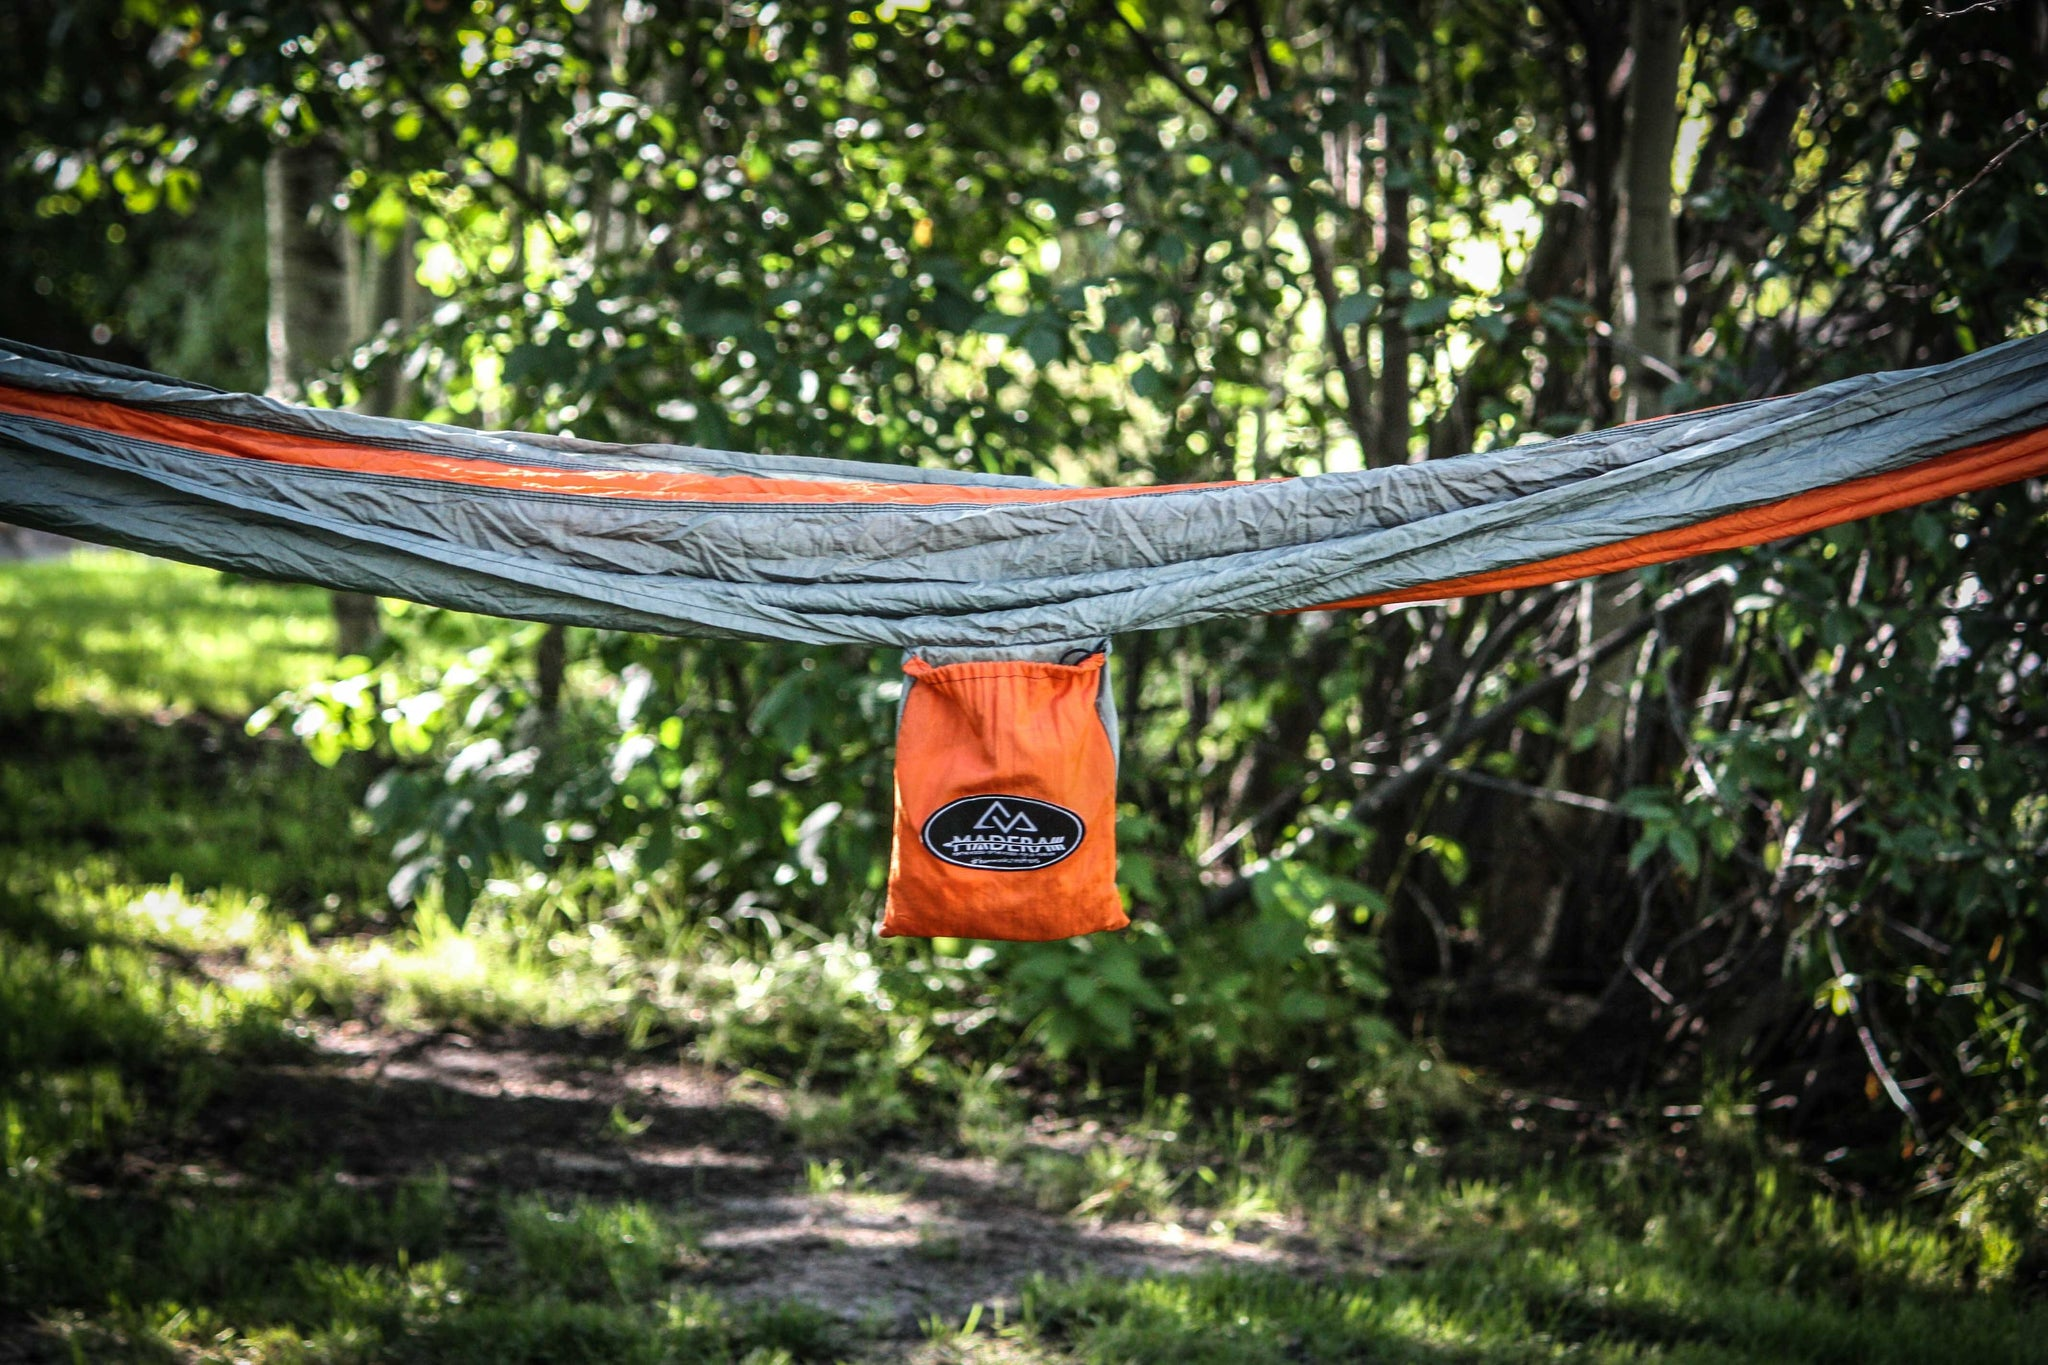 eno camping hammock top hammocks that sunset ocean products plant trees tent the outdoor cheap companies madera hammocksneedtrees best